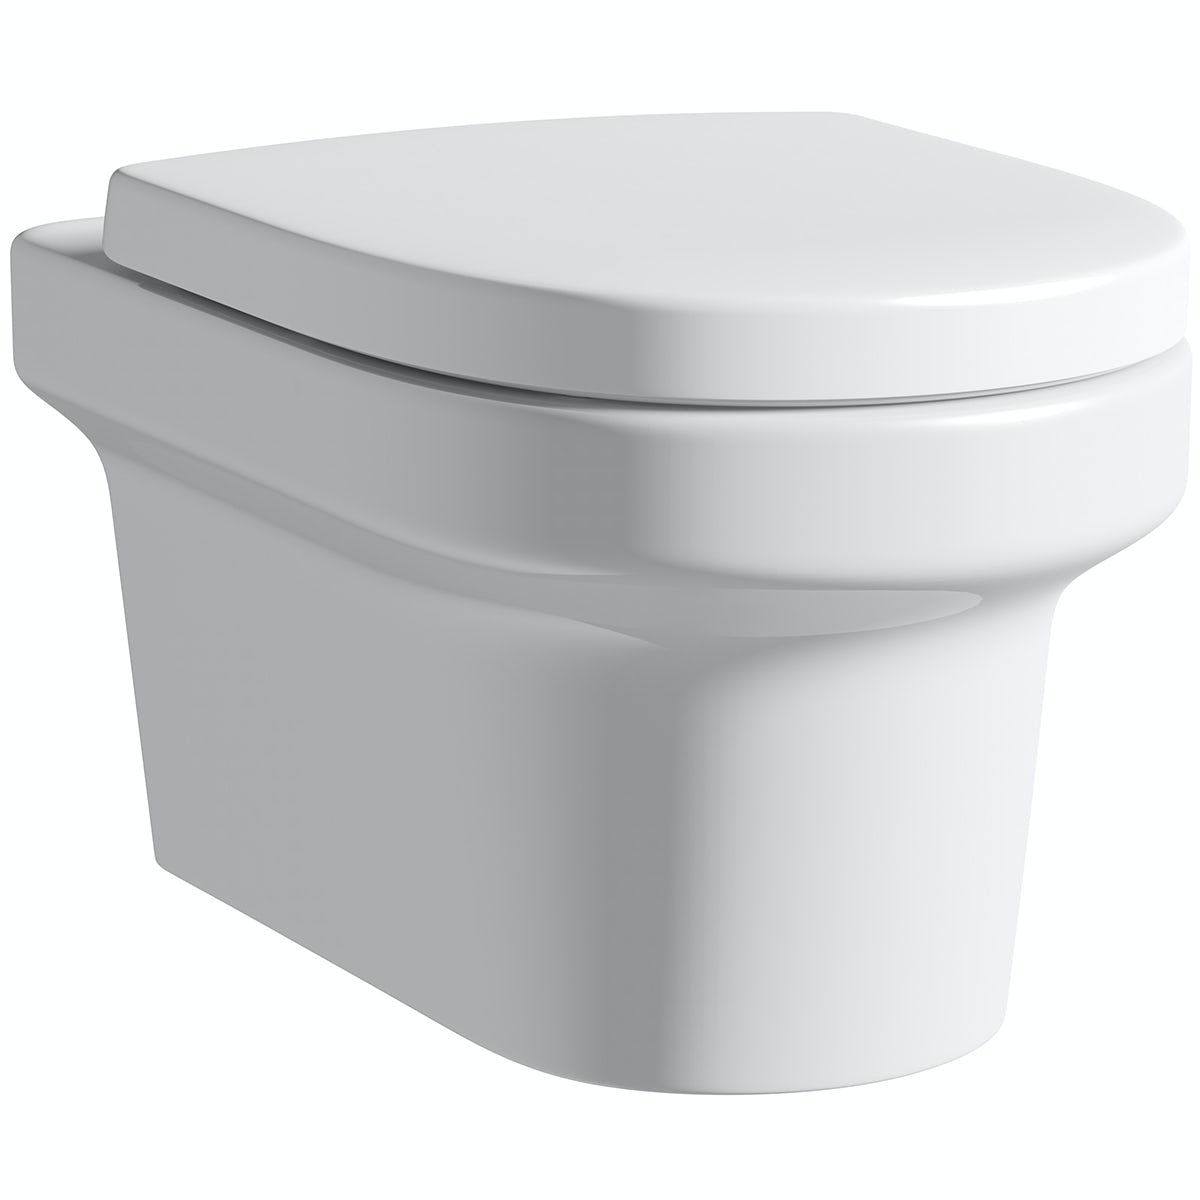 Mode Burton wall hung toilet with soft close seat